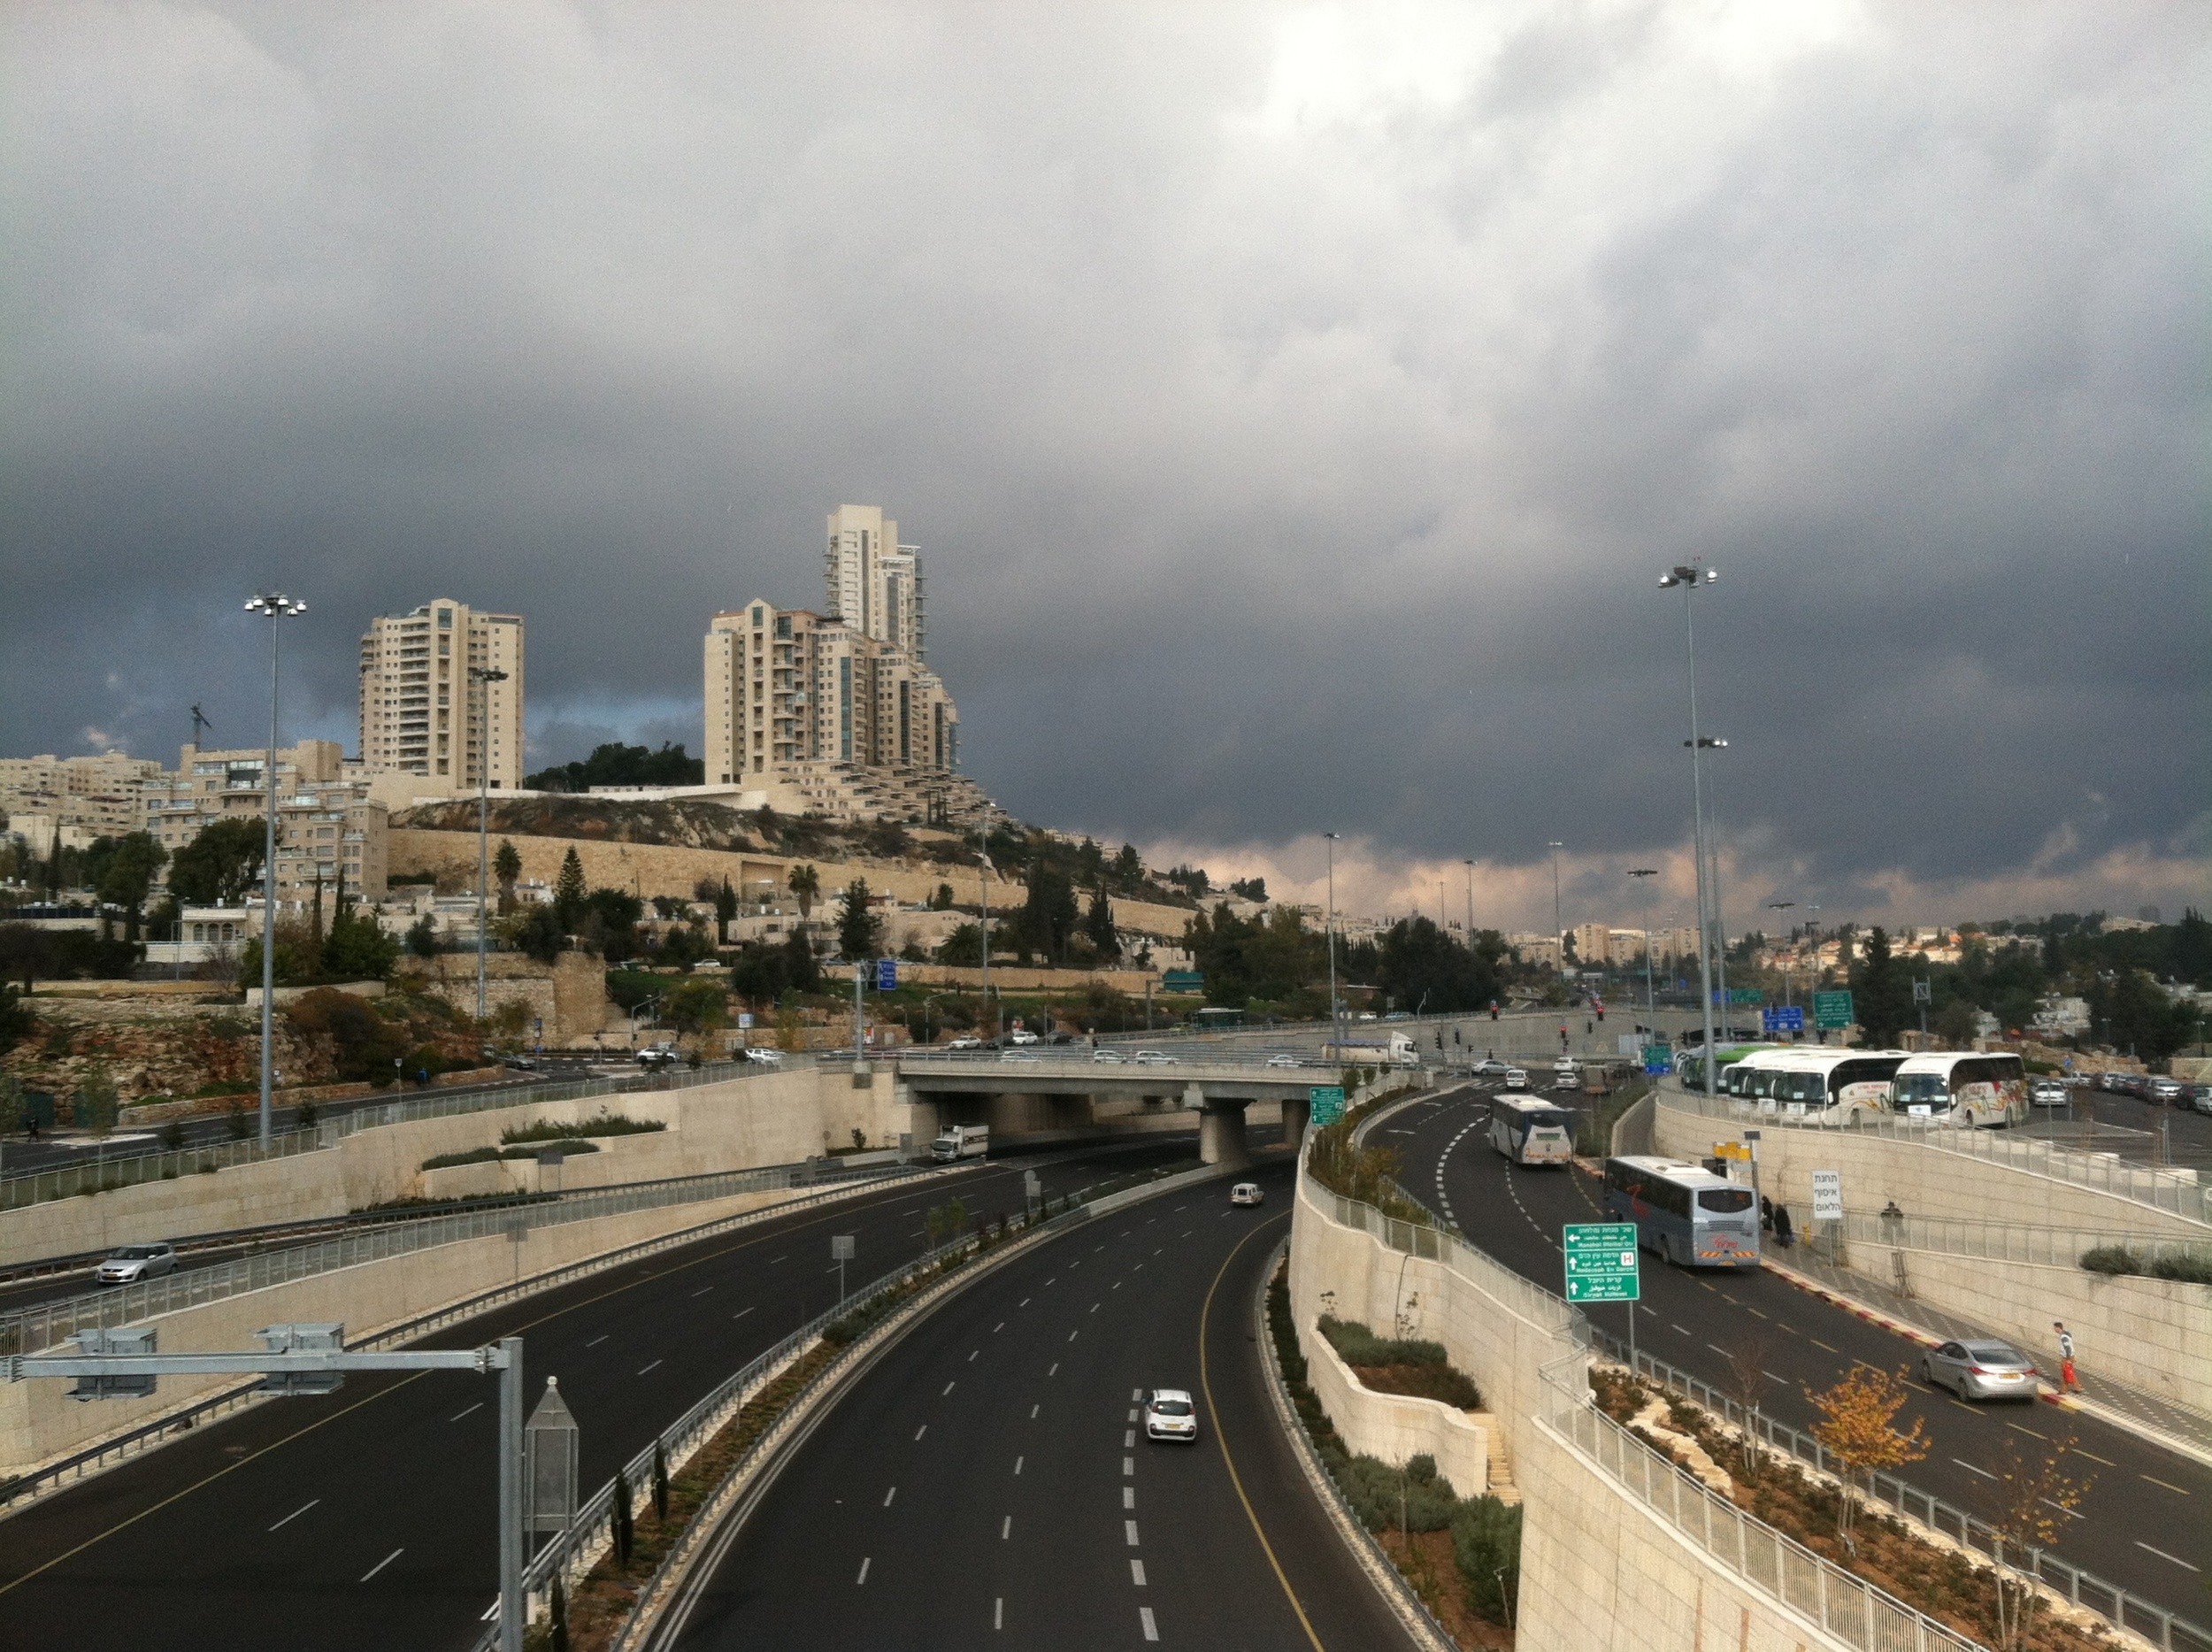 Highway in the Holy City  (Jerusalem, 12/30/15)